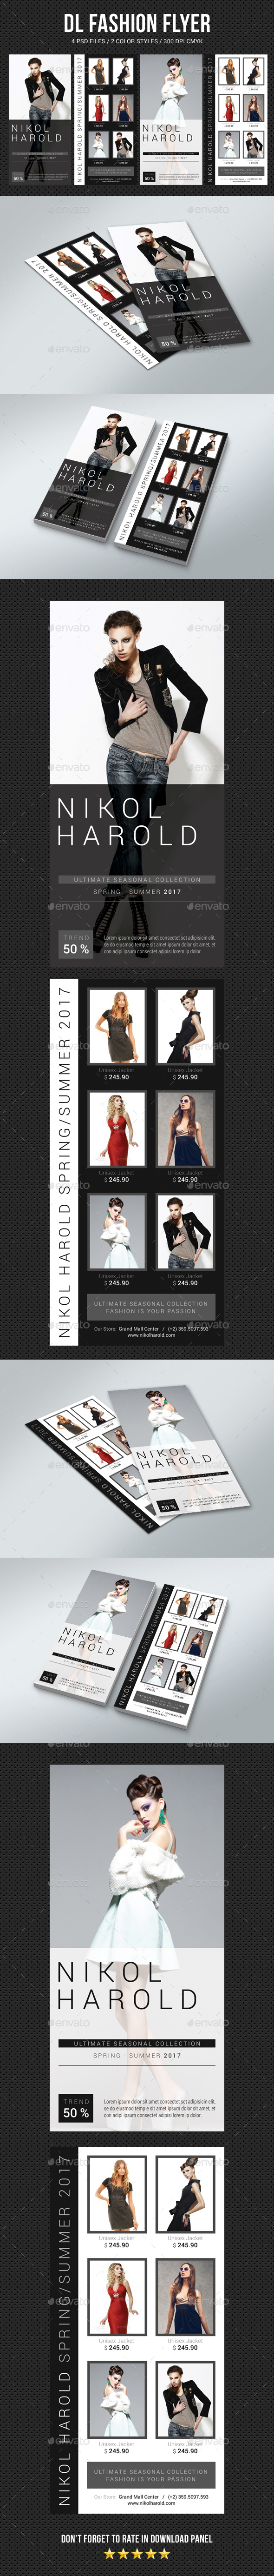 DL Fashion Flyer - Commerce Flyers